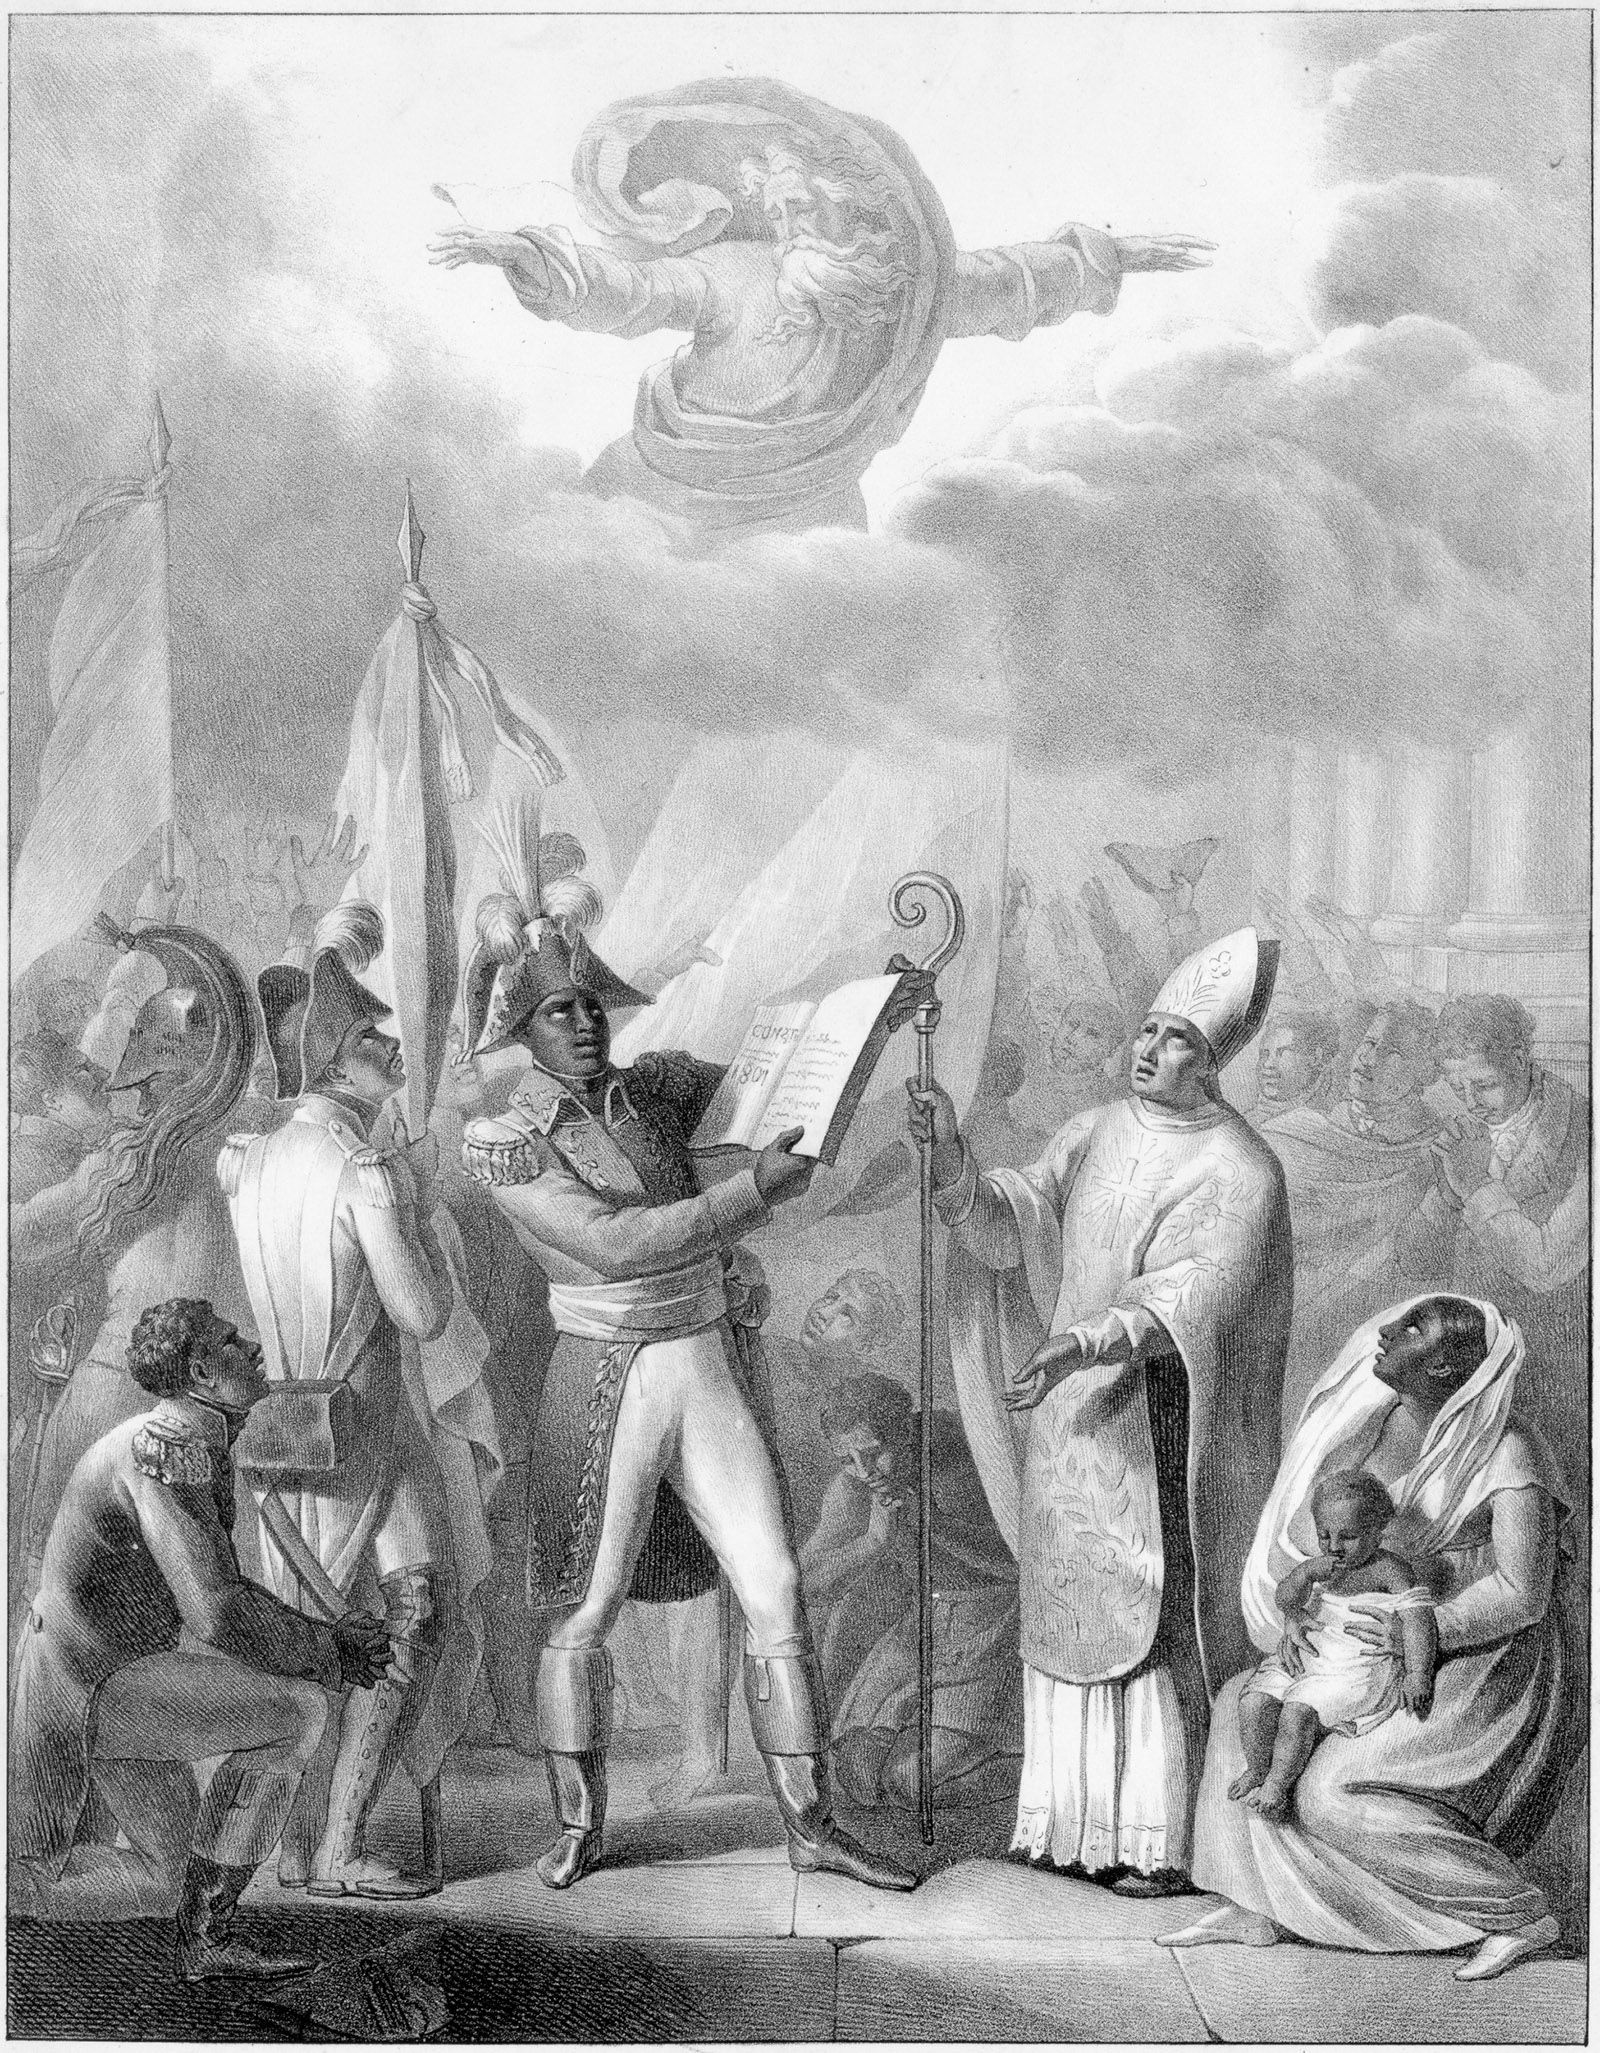 Lithograph of Toussaint Louverture proclaiming the Constitution of the Republic of Haiti